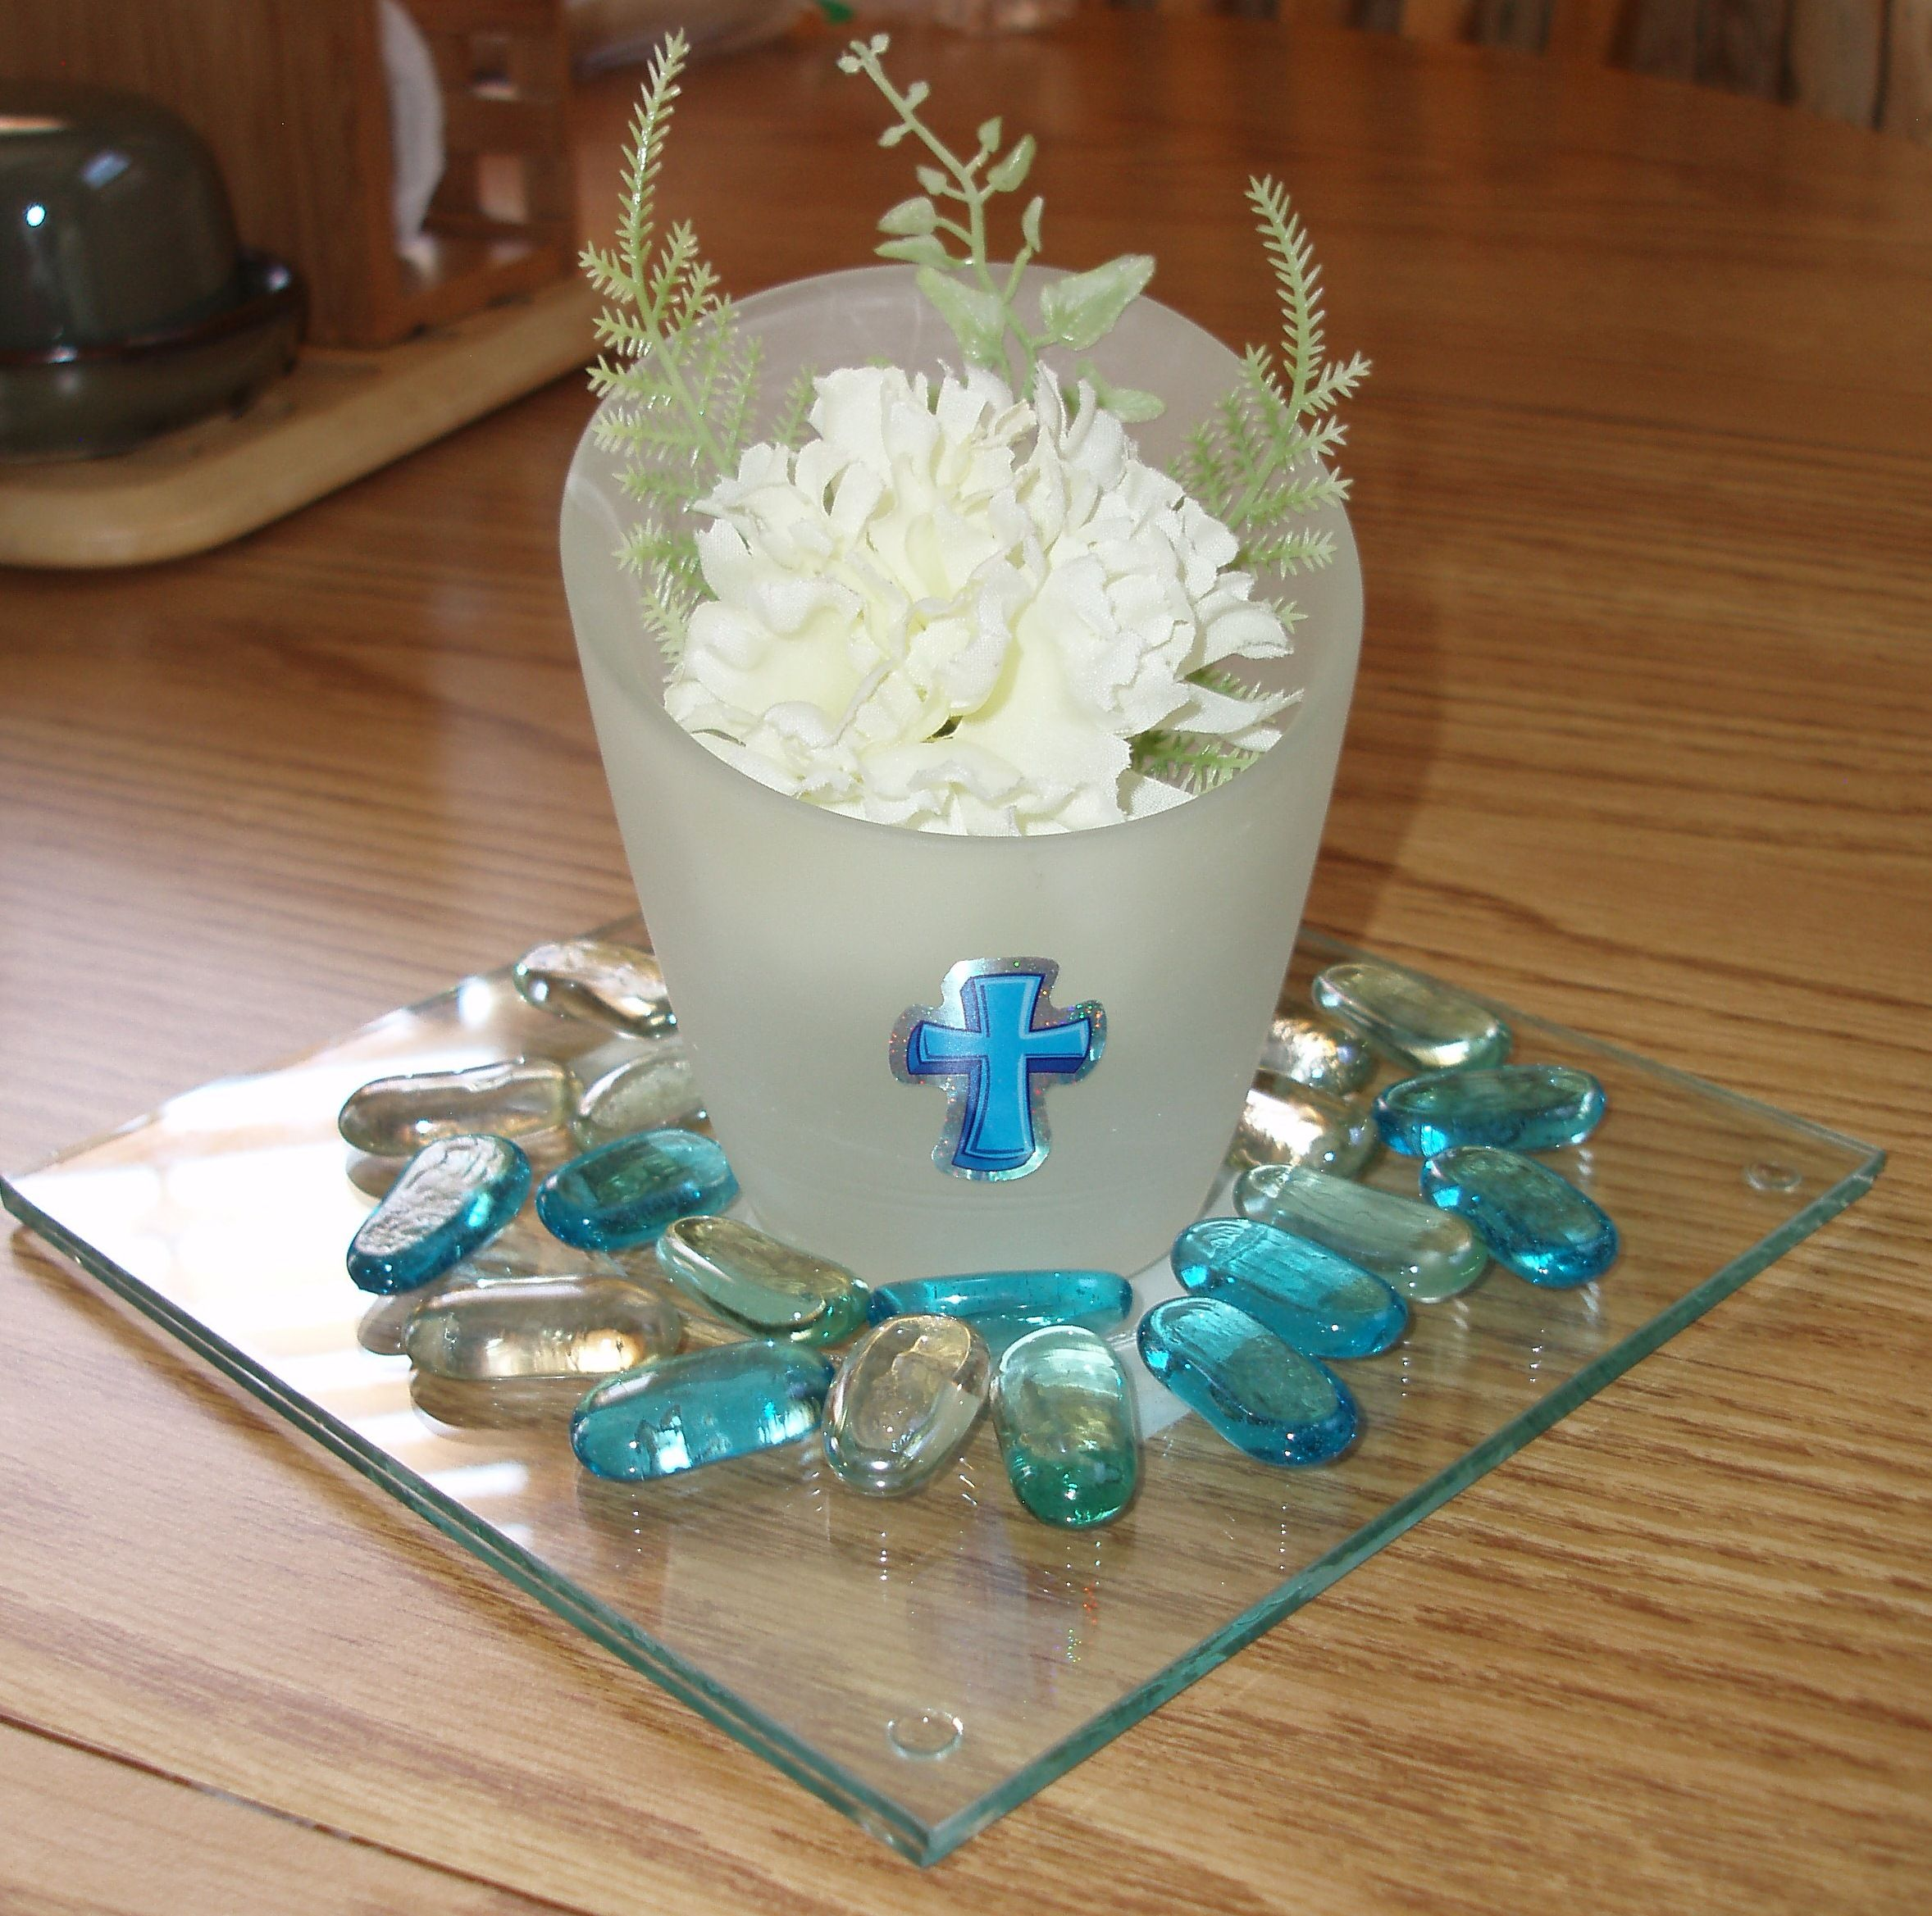 munion party centerpieces l from Dollar Tree